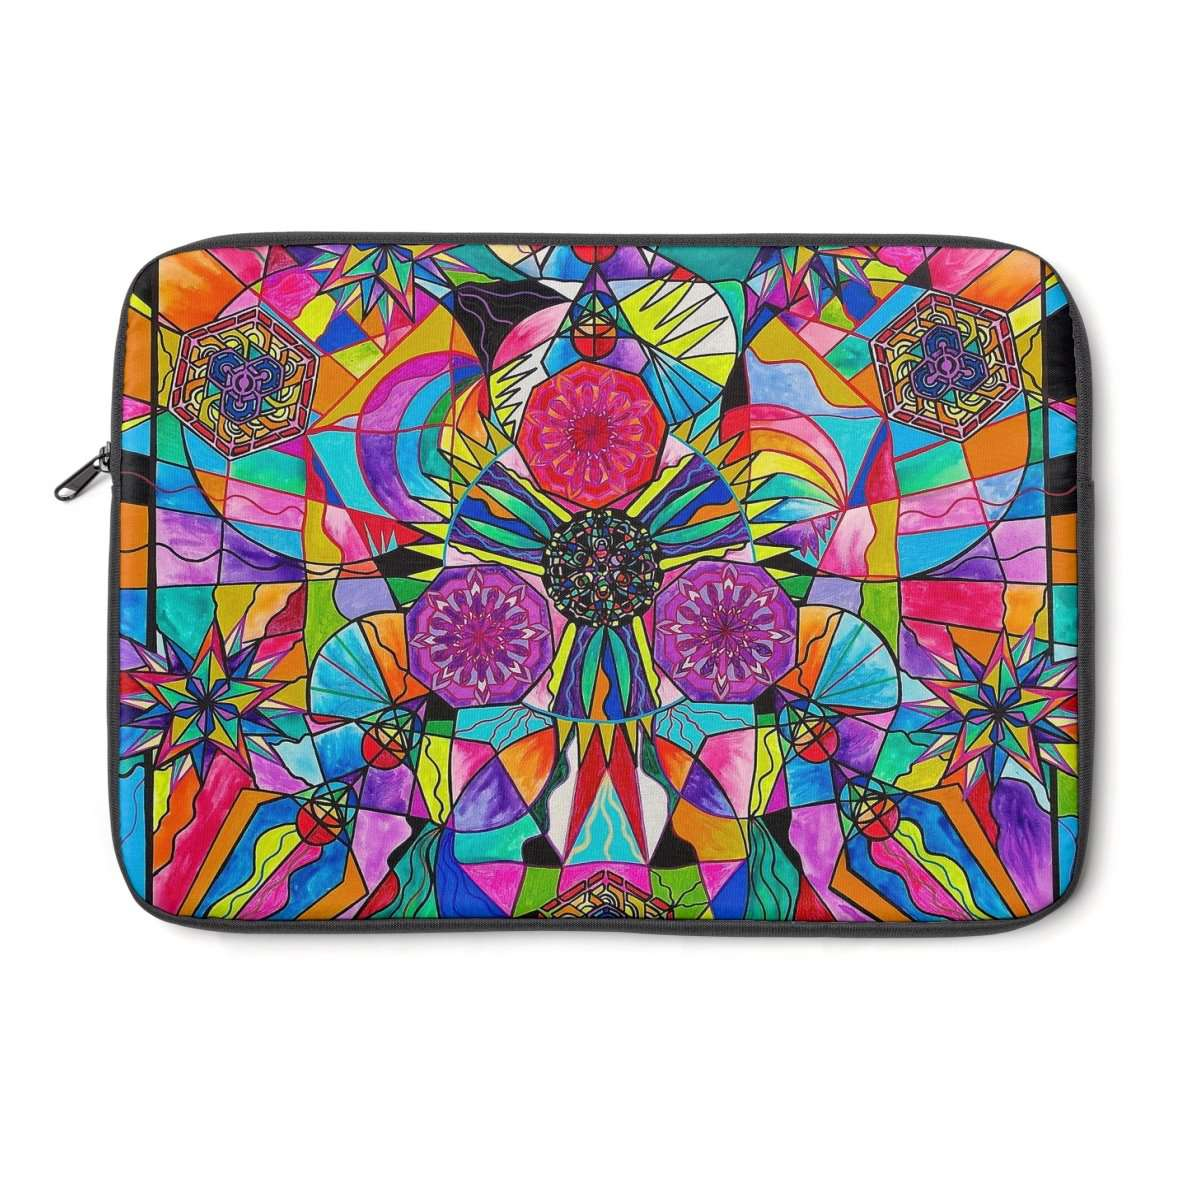 Positive Intention - Laptop Sleeve